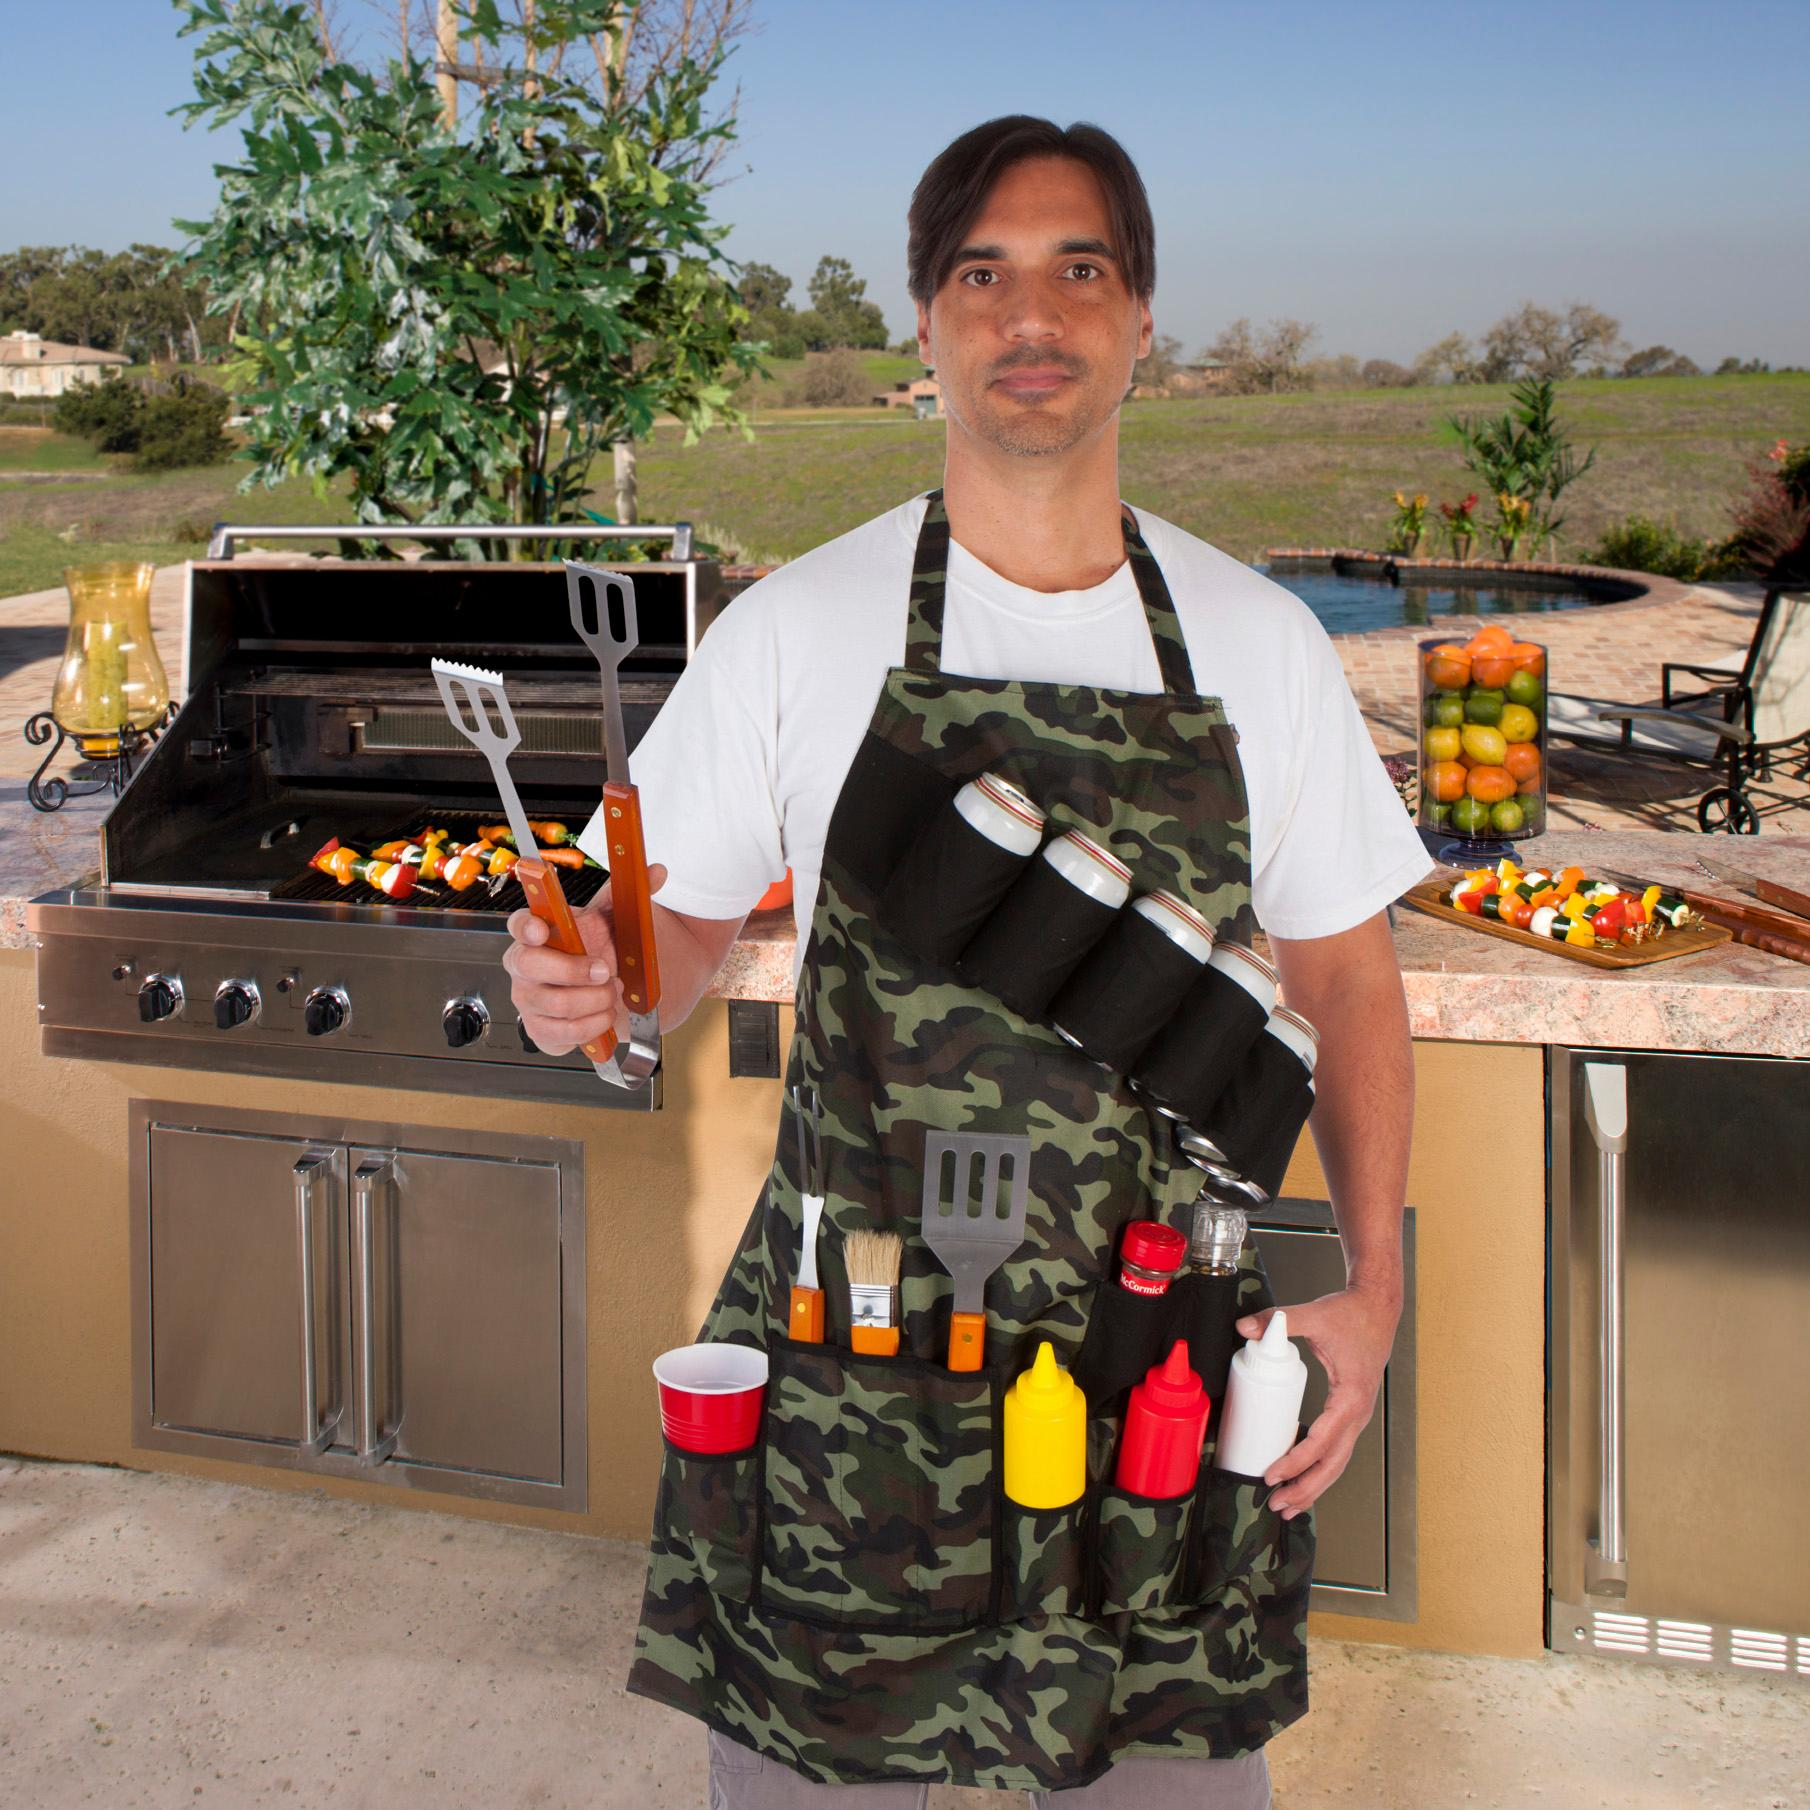 Camouflage EZ DRINKER Grill Master Grill Apron and Accessory Holds Beverages and Tools